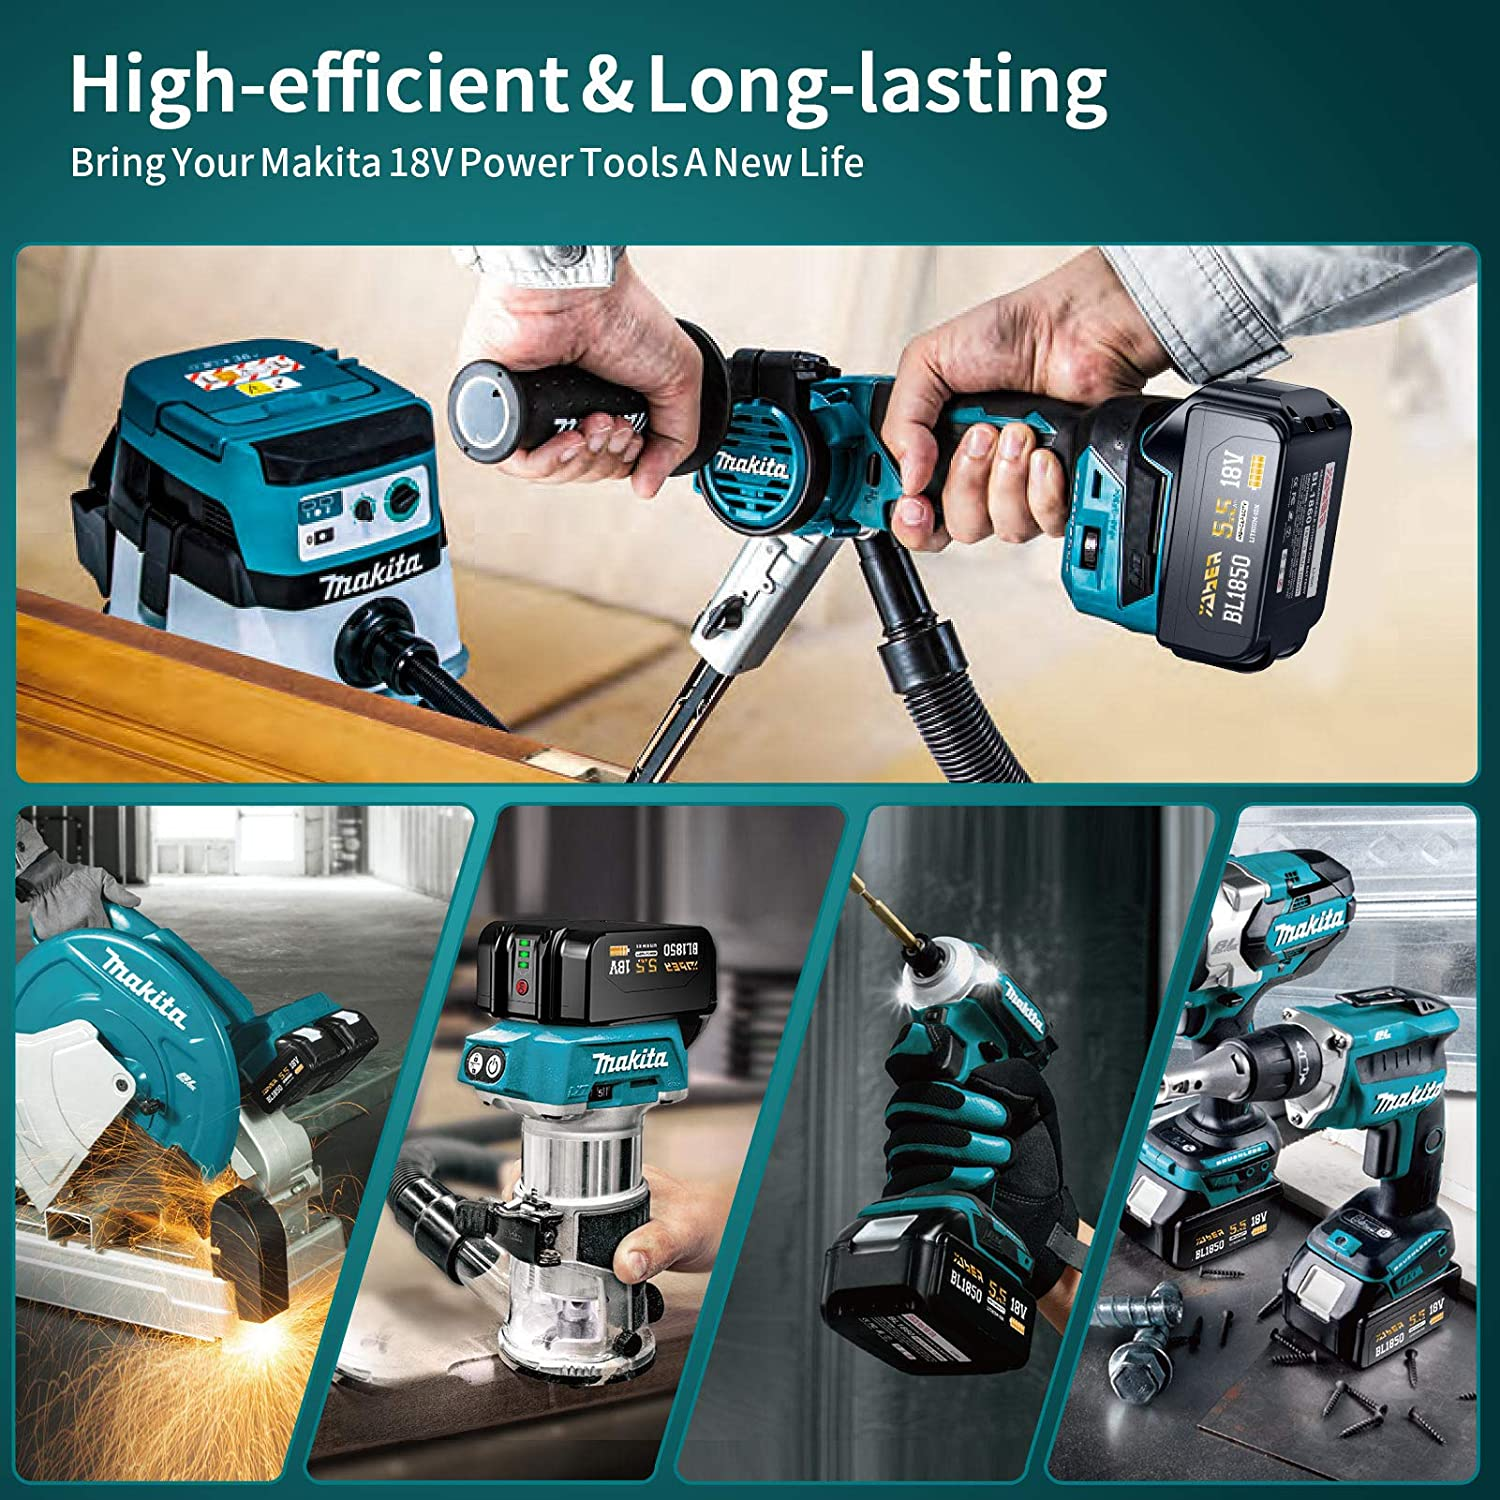 YABER 18V 5500mah Battery Compatible with Makita 18V Tools LXT-400 BL1830B BL1840B BL1850B BL1860B Cordless Drills/&Tools Fit for DC18RC DC18RD 18V C harger C harger is not Included